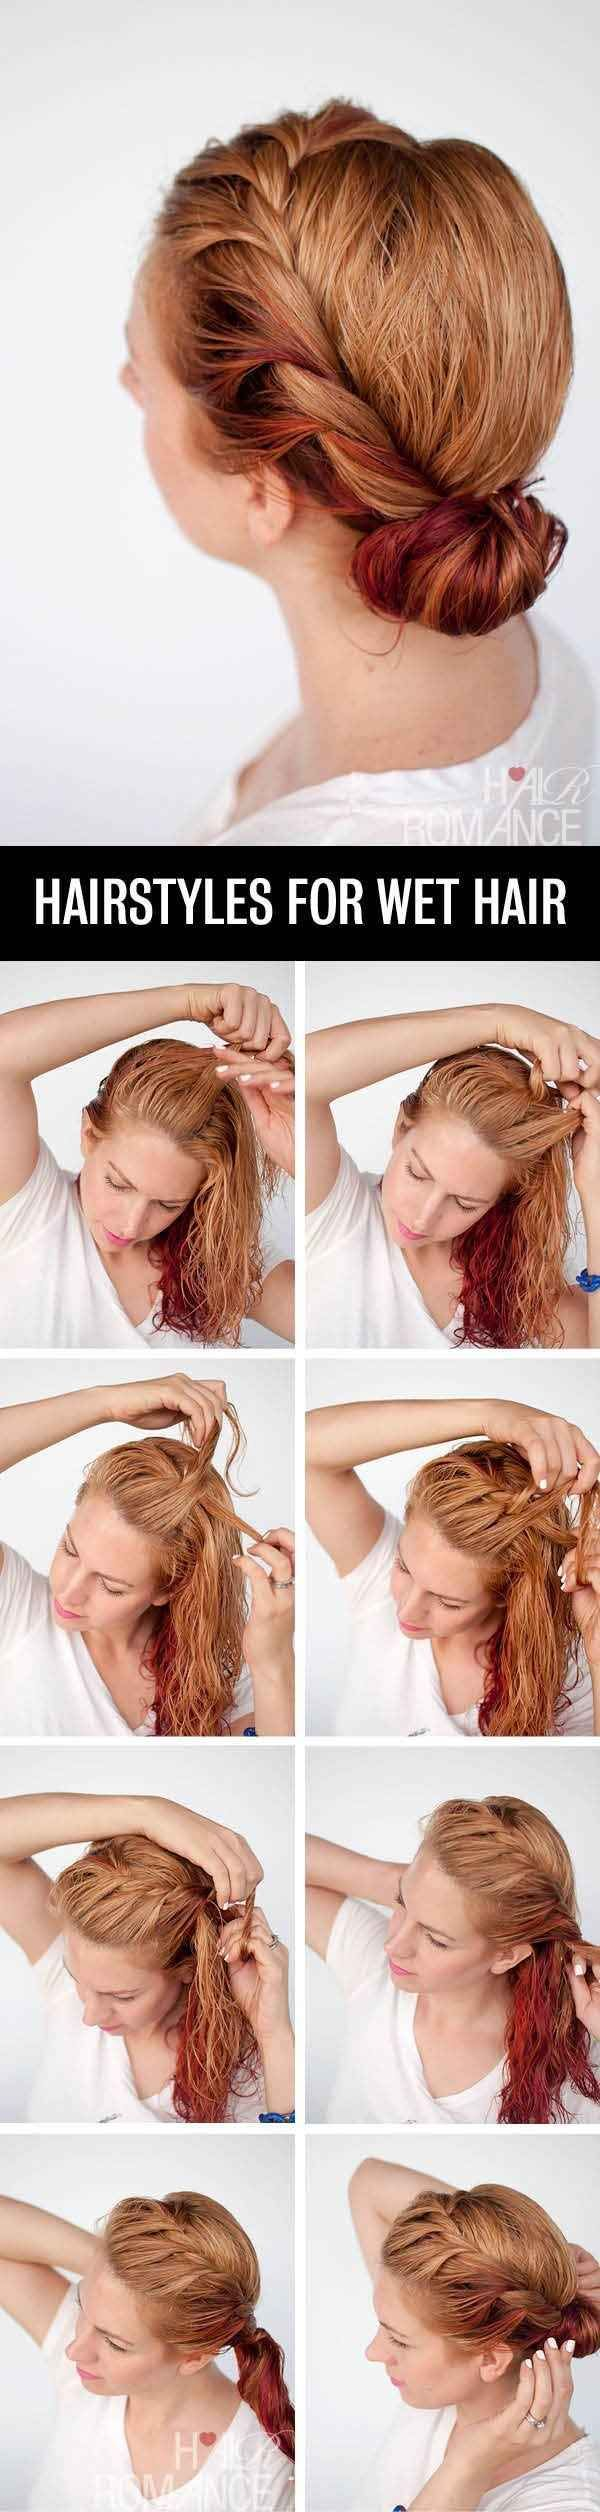 braided crown hairstyles ideas and tutorials, how to make